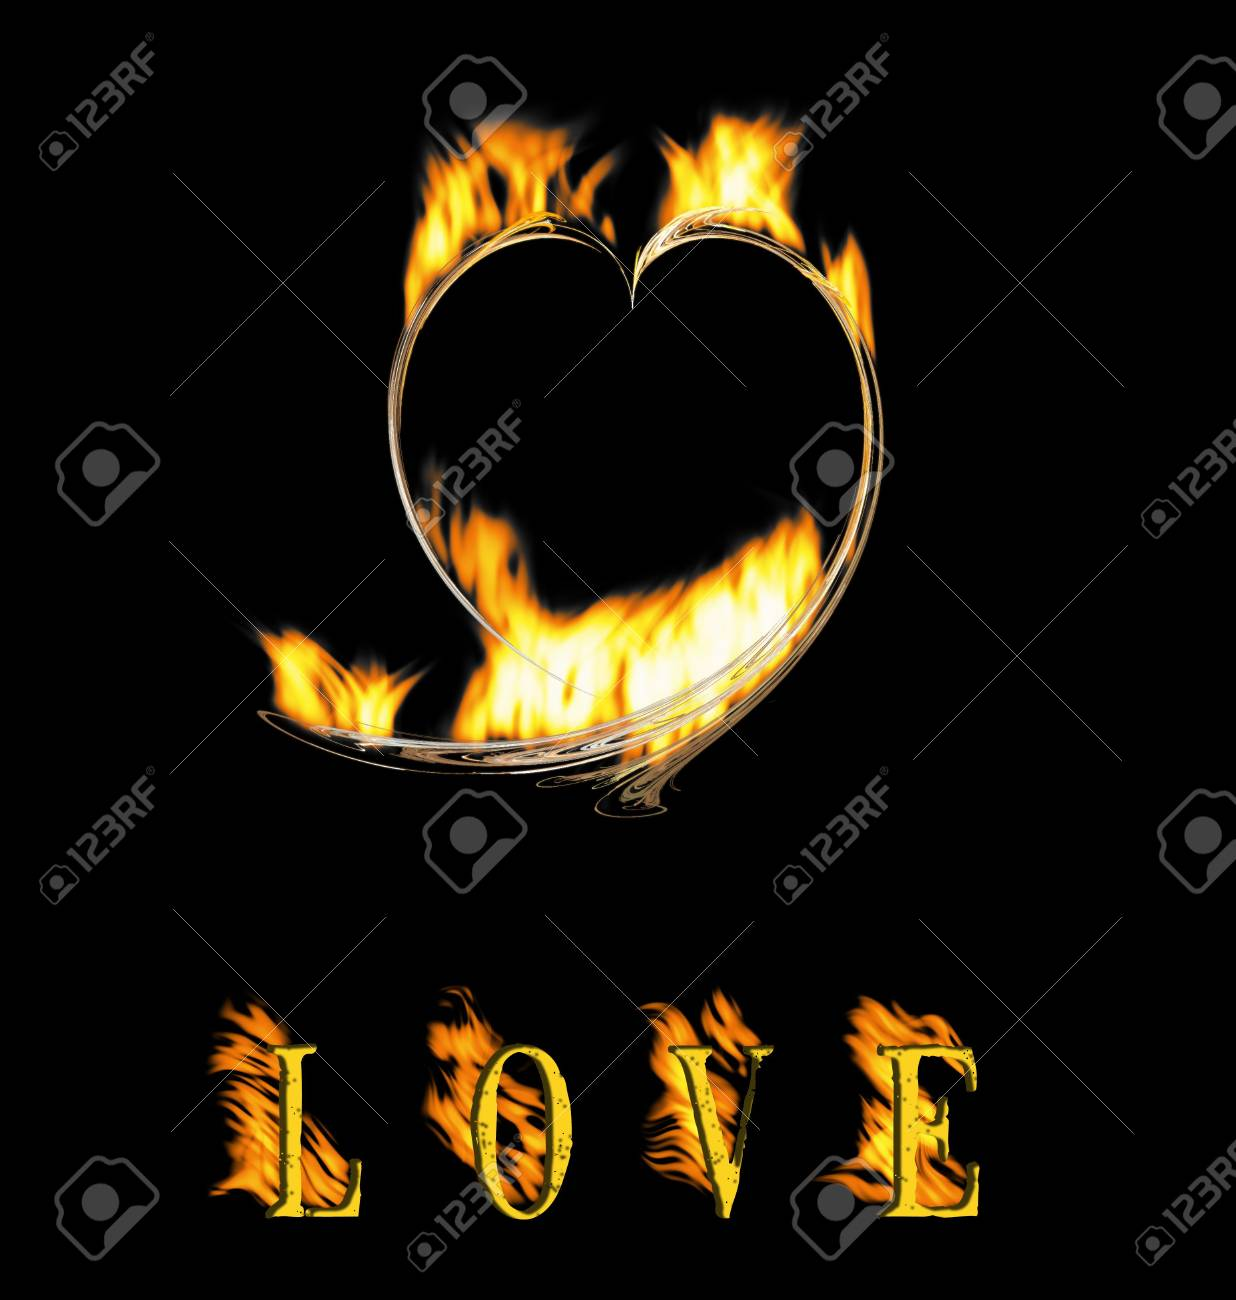 Symbol heart and an inscription love the love, burning on fire Stock Photo - 6413922